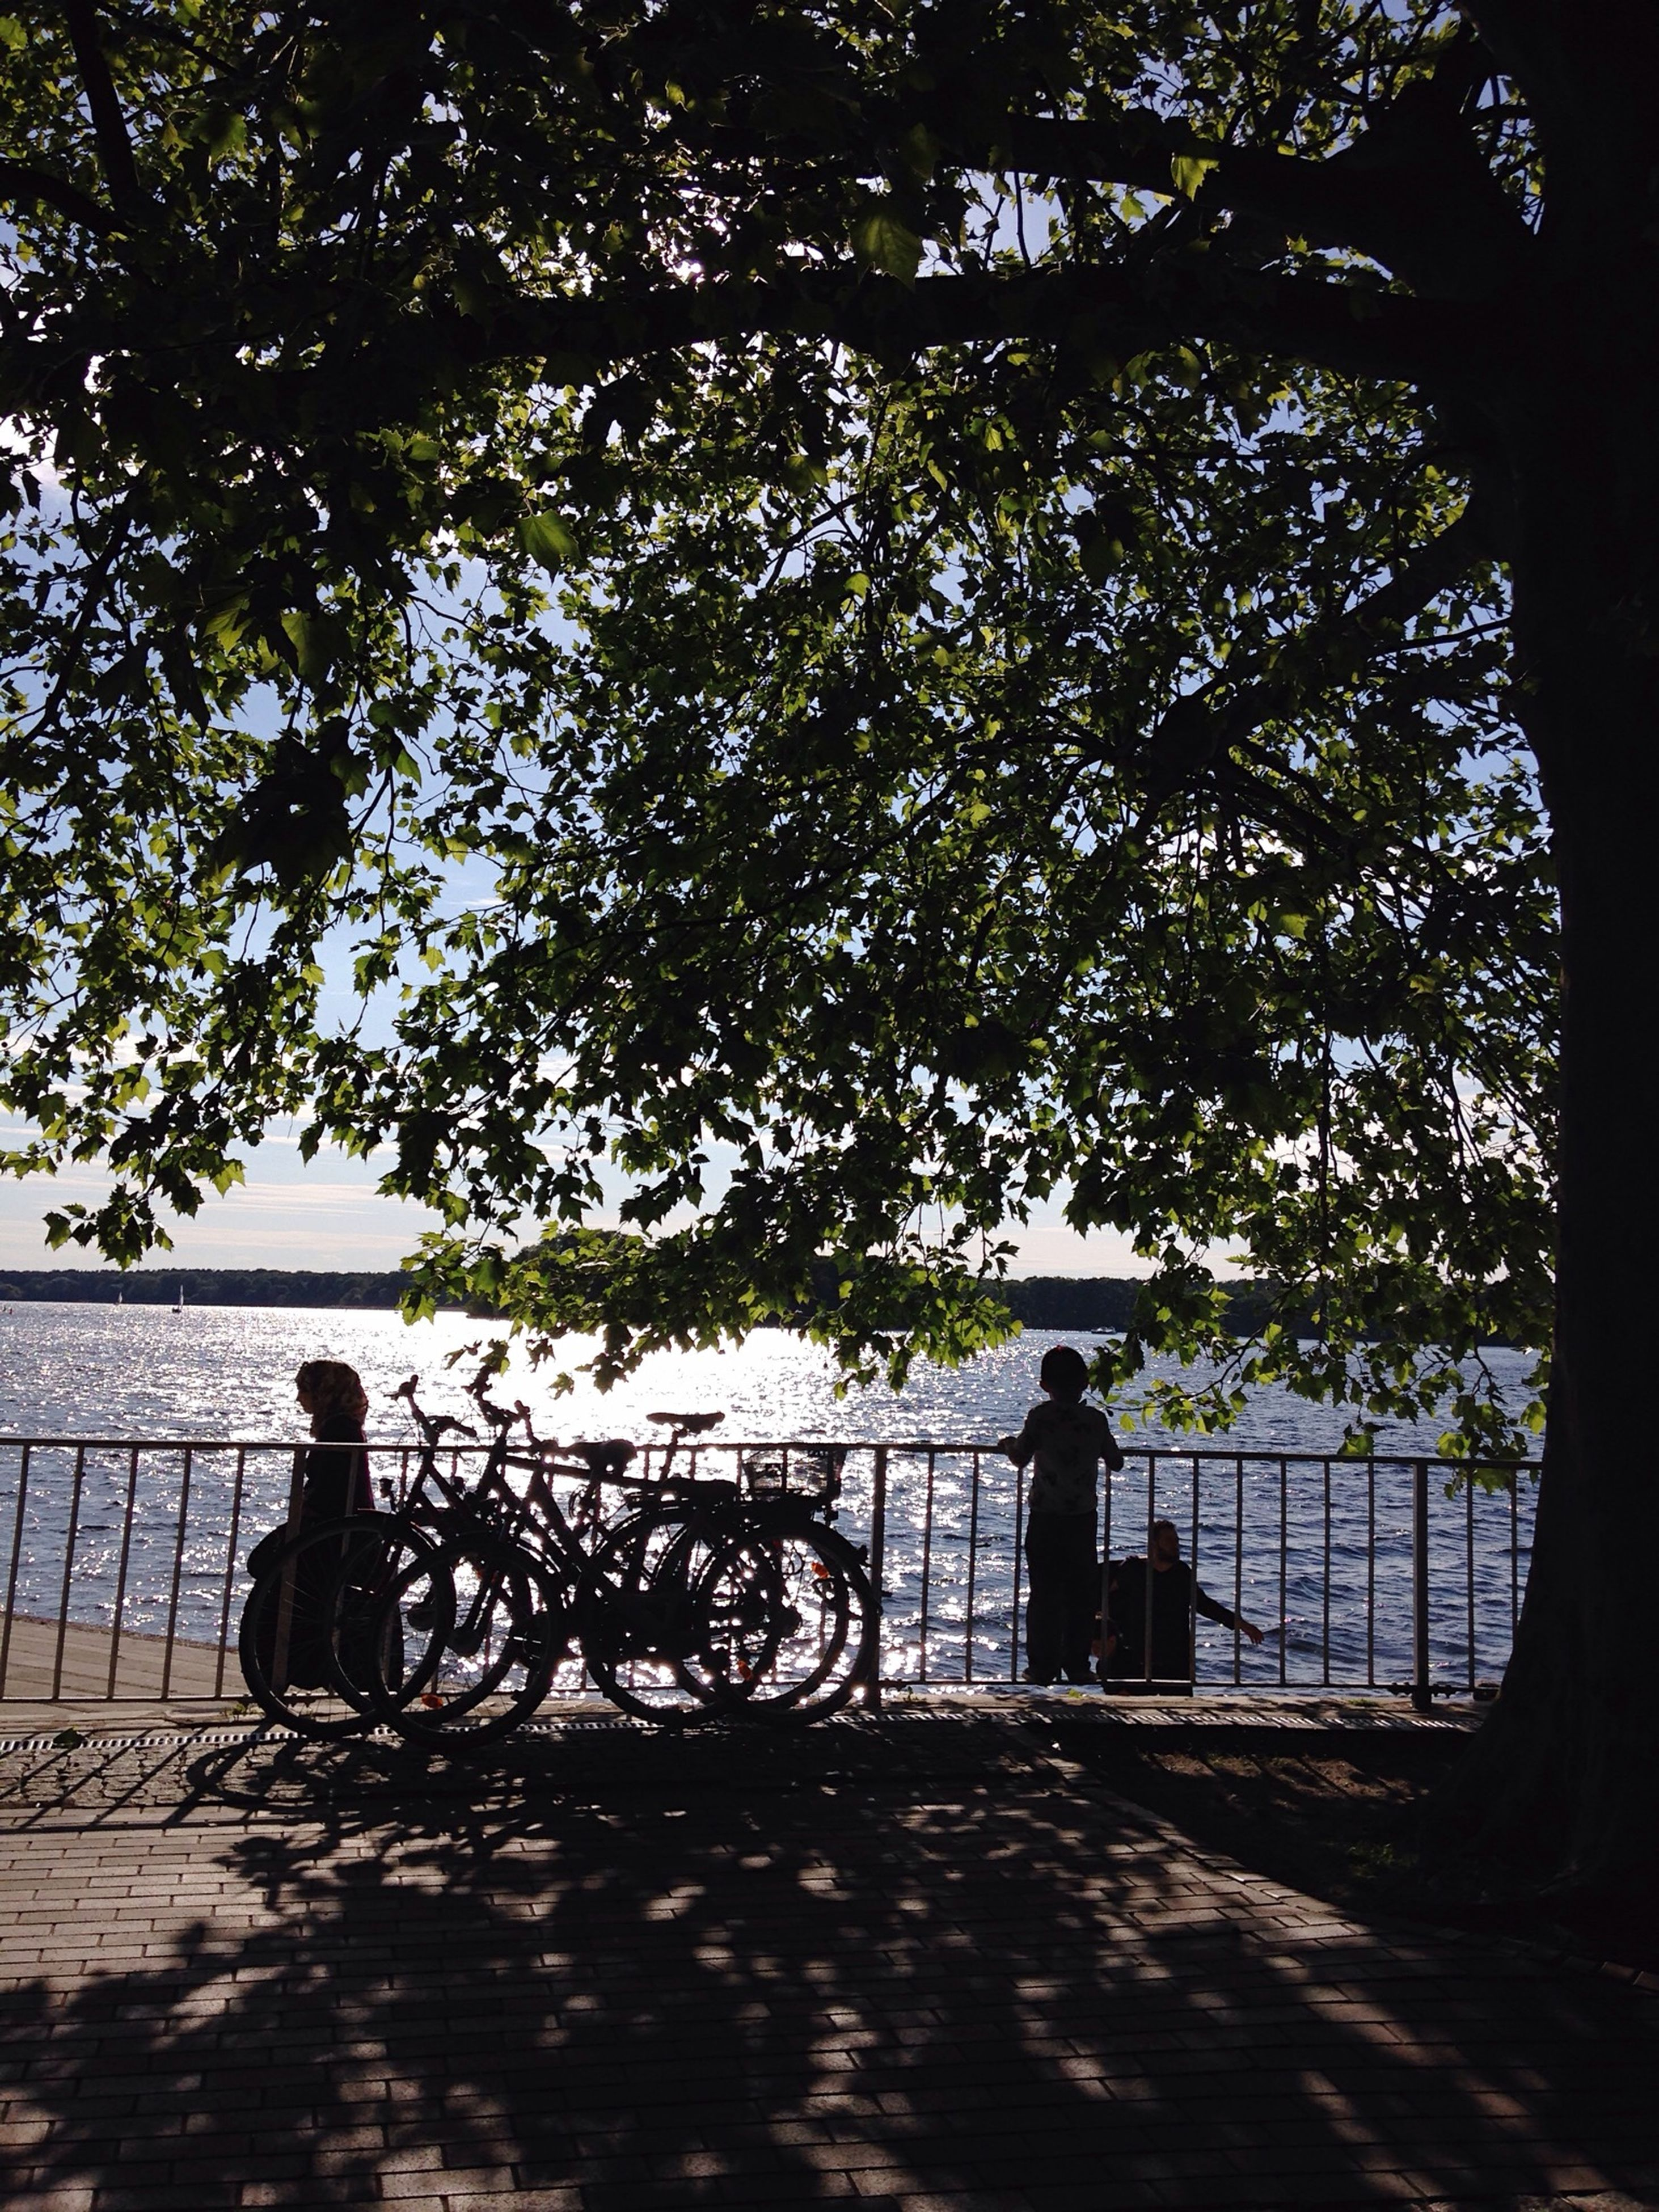 tree, silhouette, railing, fence, shadow, sunlight, branch, walking, nature, tranquility, men, day, protection, growth, outdoors, unrecognizable person, bicycle